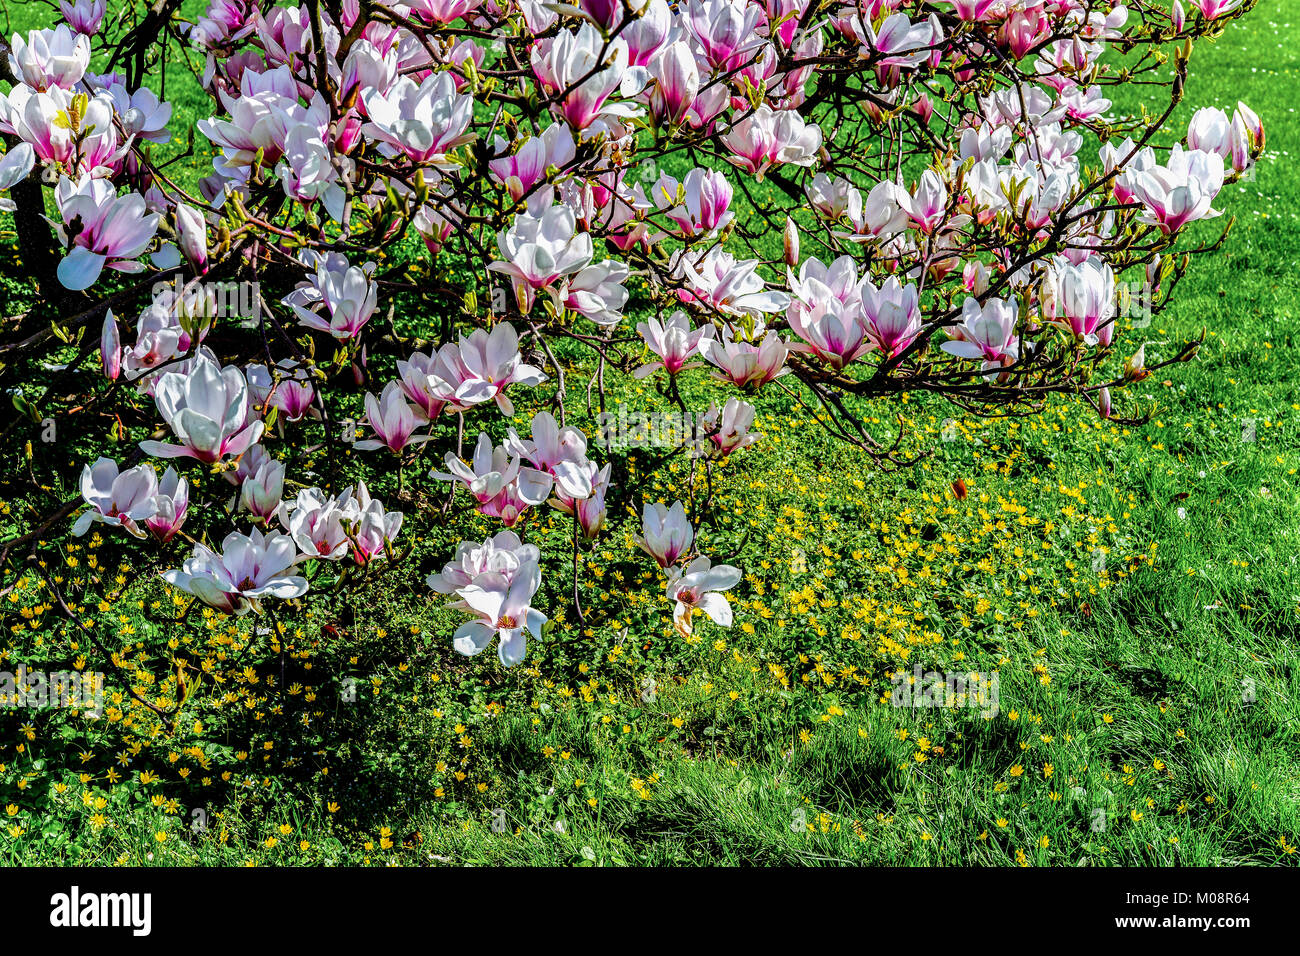 Springtime With Magnolia Tree In Full Bloom And Meadow Stock Photo